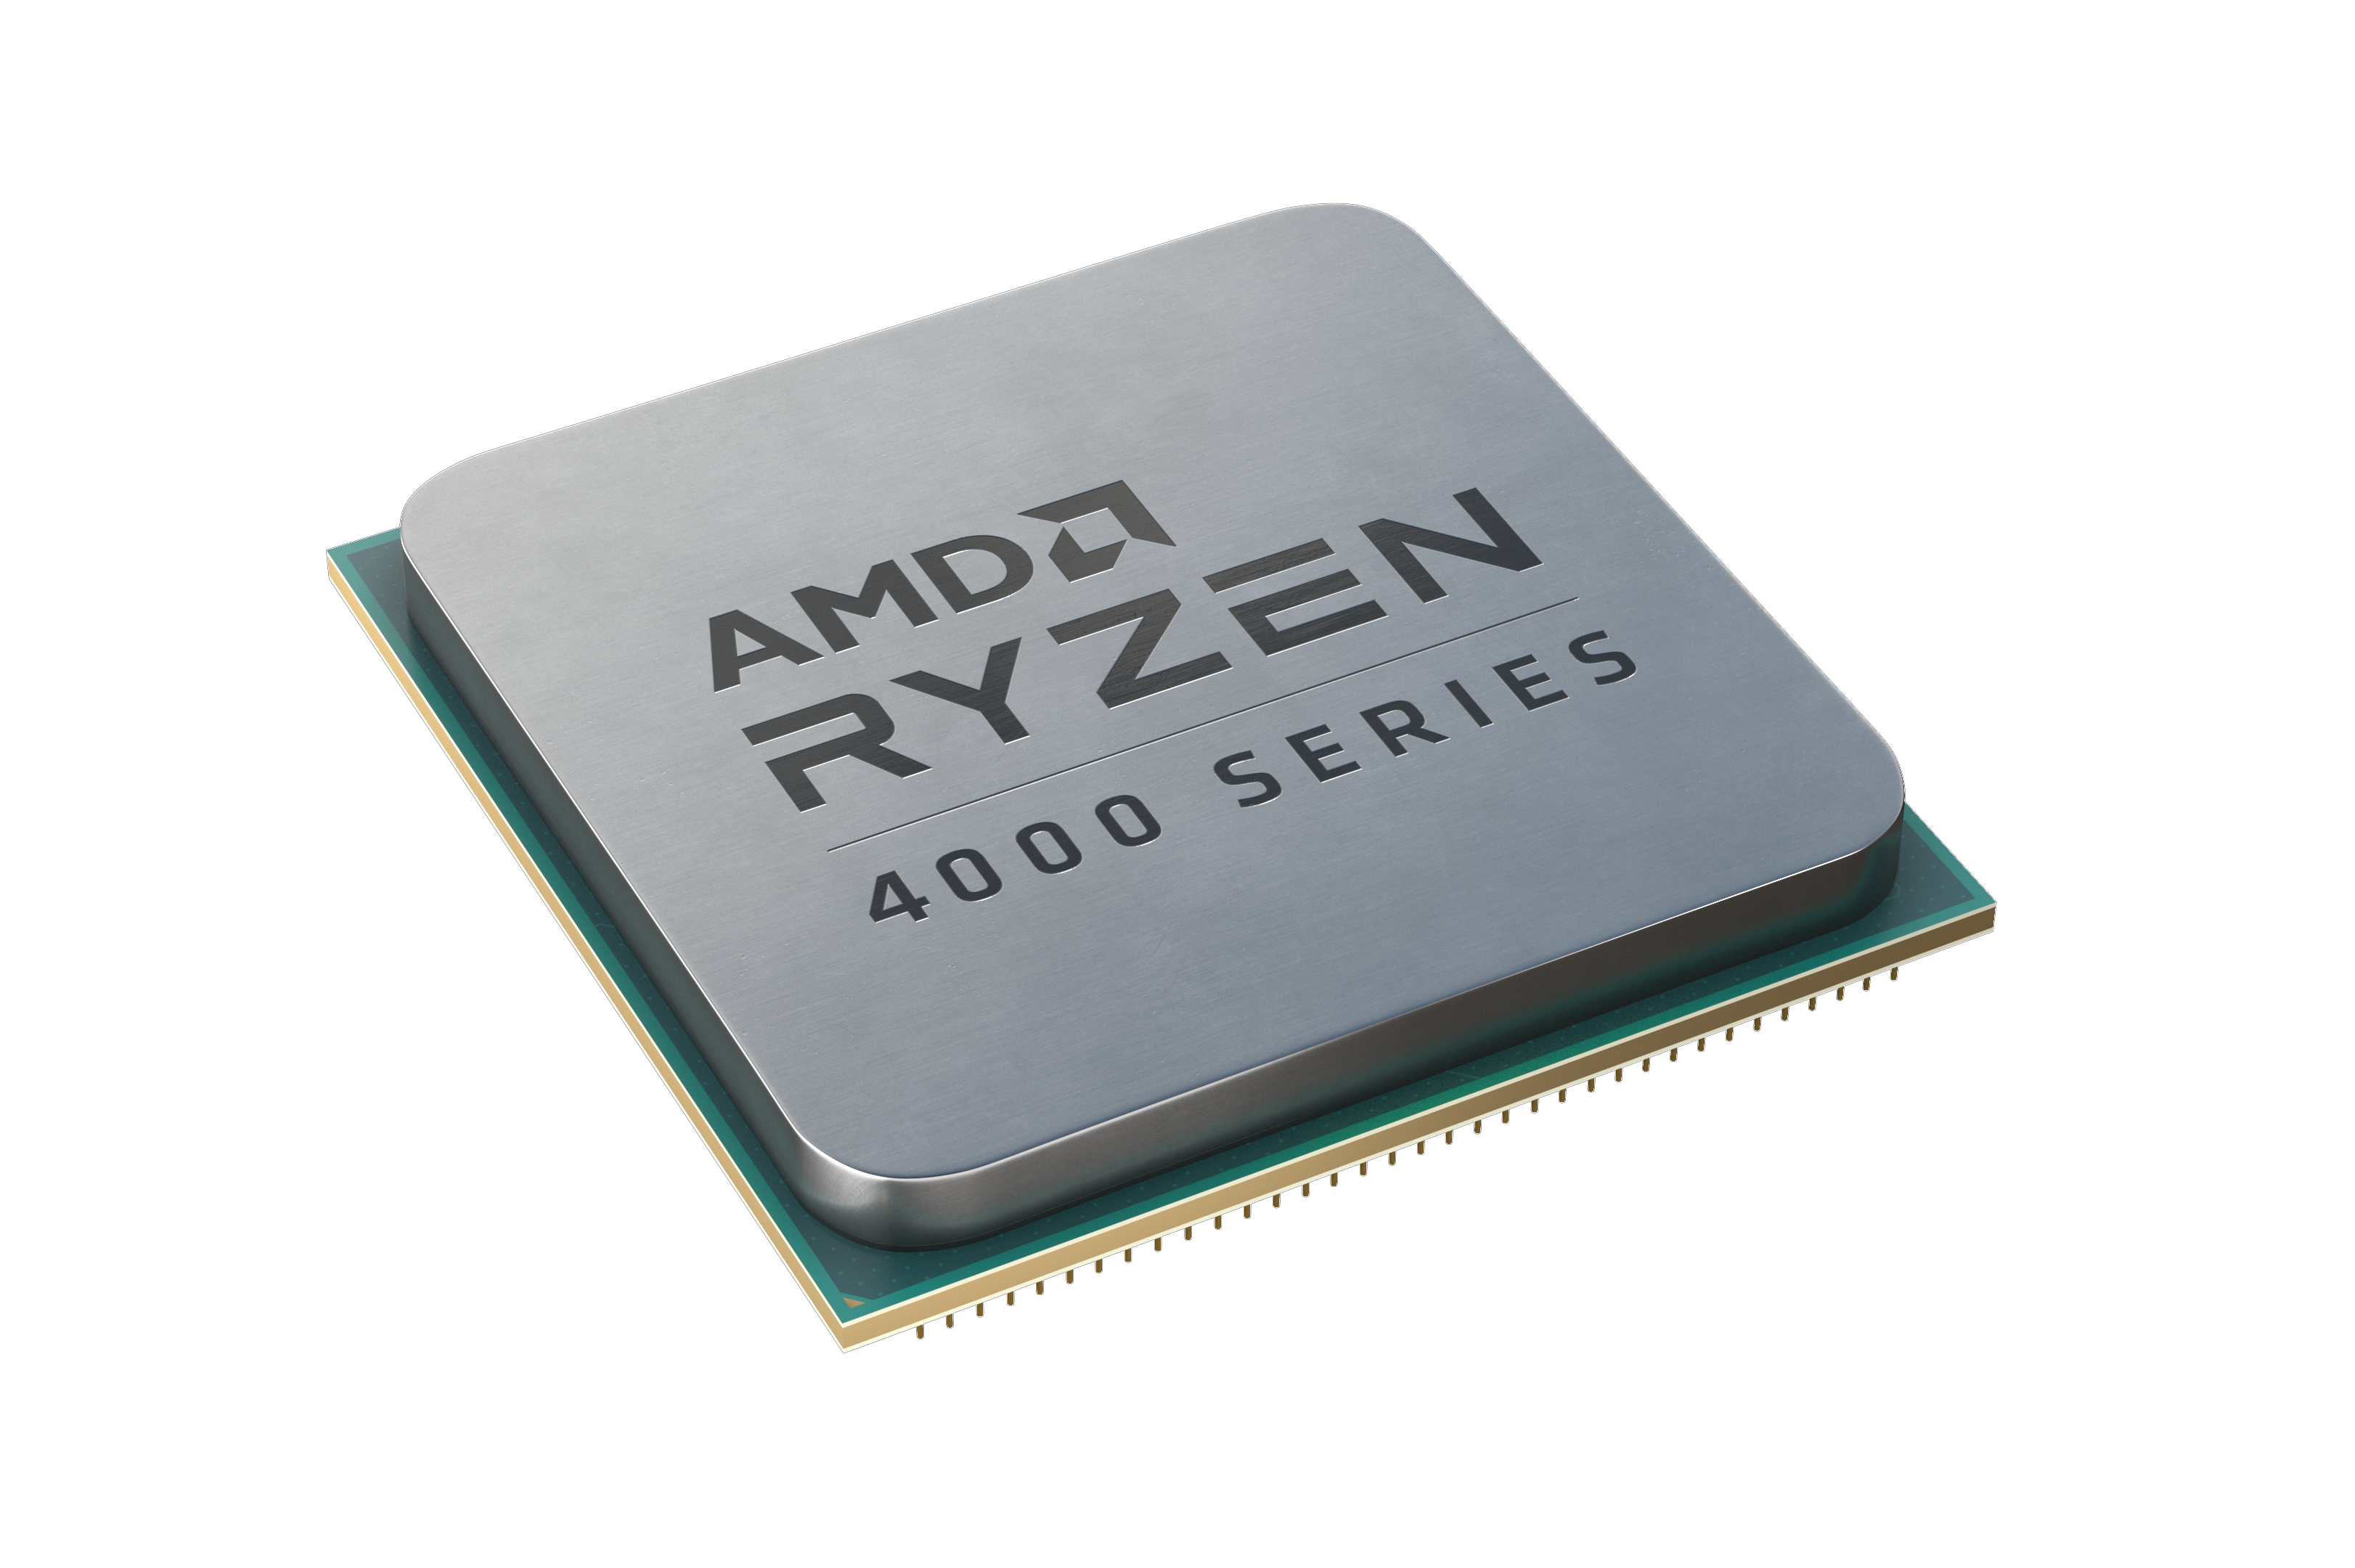 Amd Ryzen 4000 5000 Release Date Price Specs And Performance